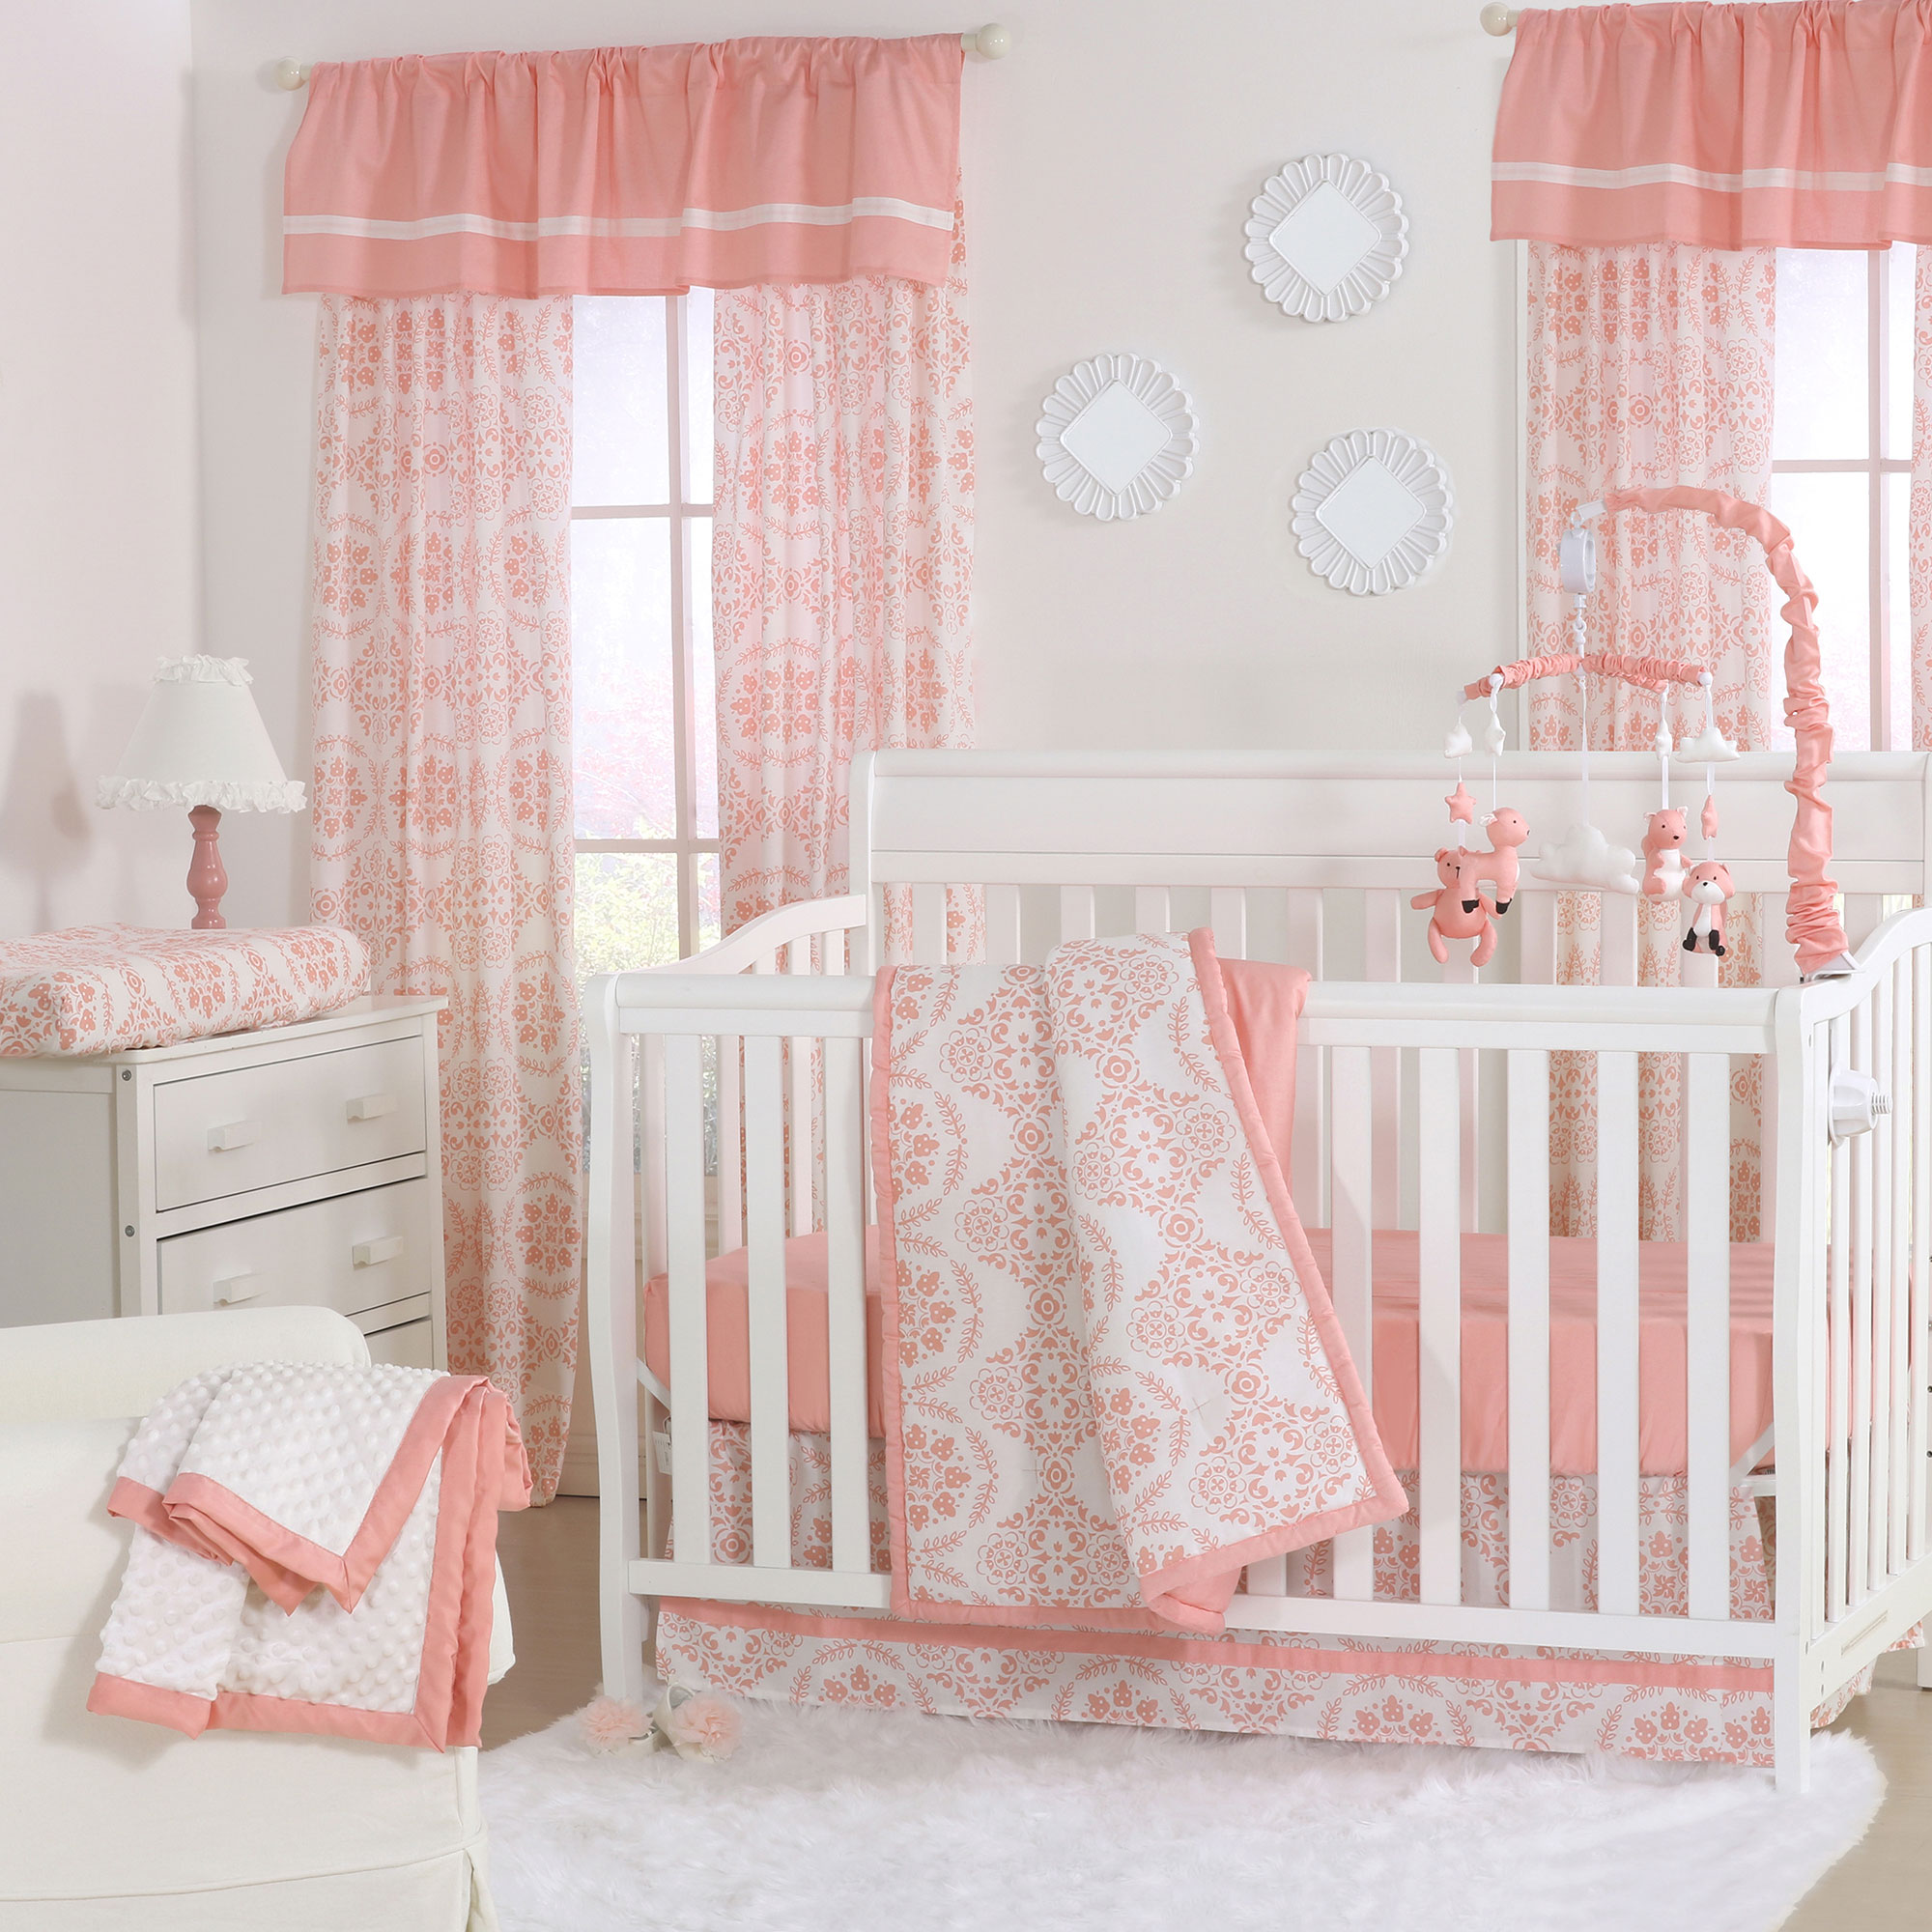 The Peanut Shell 4 Piece Baby Girl Crib Bedding Set - Coral Pink and White Medallion Floral Prints - 100% Cotton Quilt, Dust Ruffle, Fitted Sheet, and Mobile